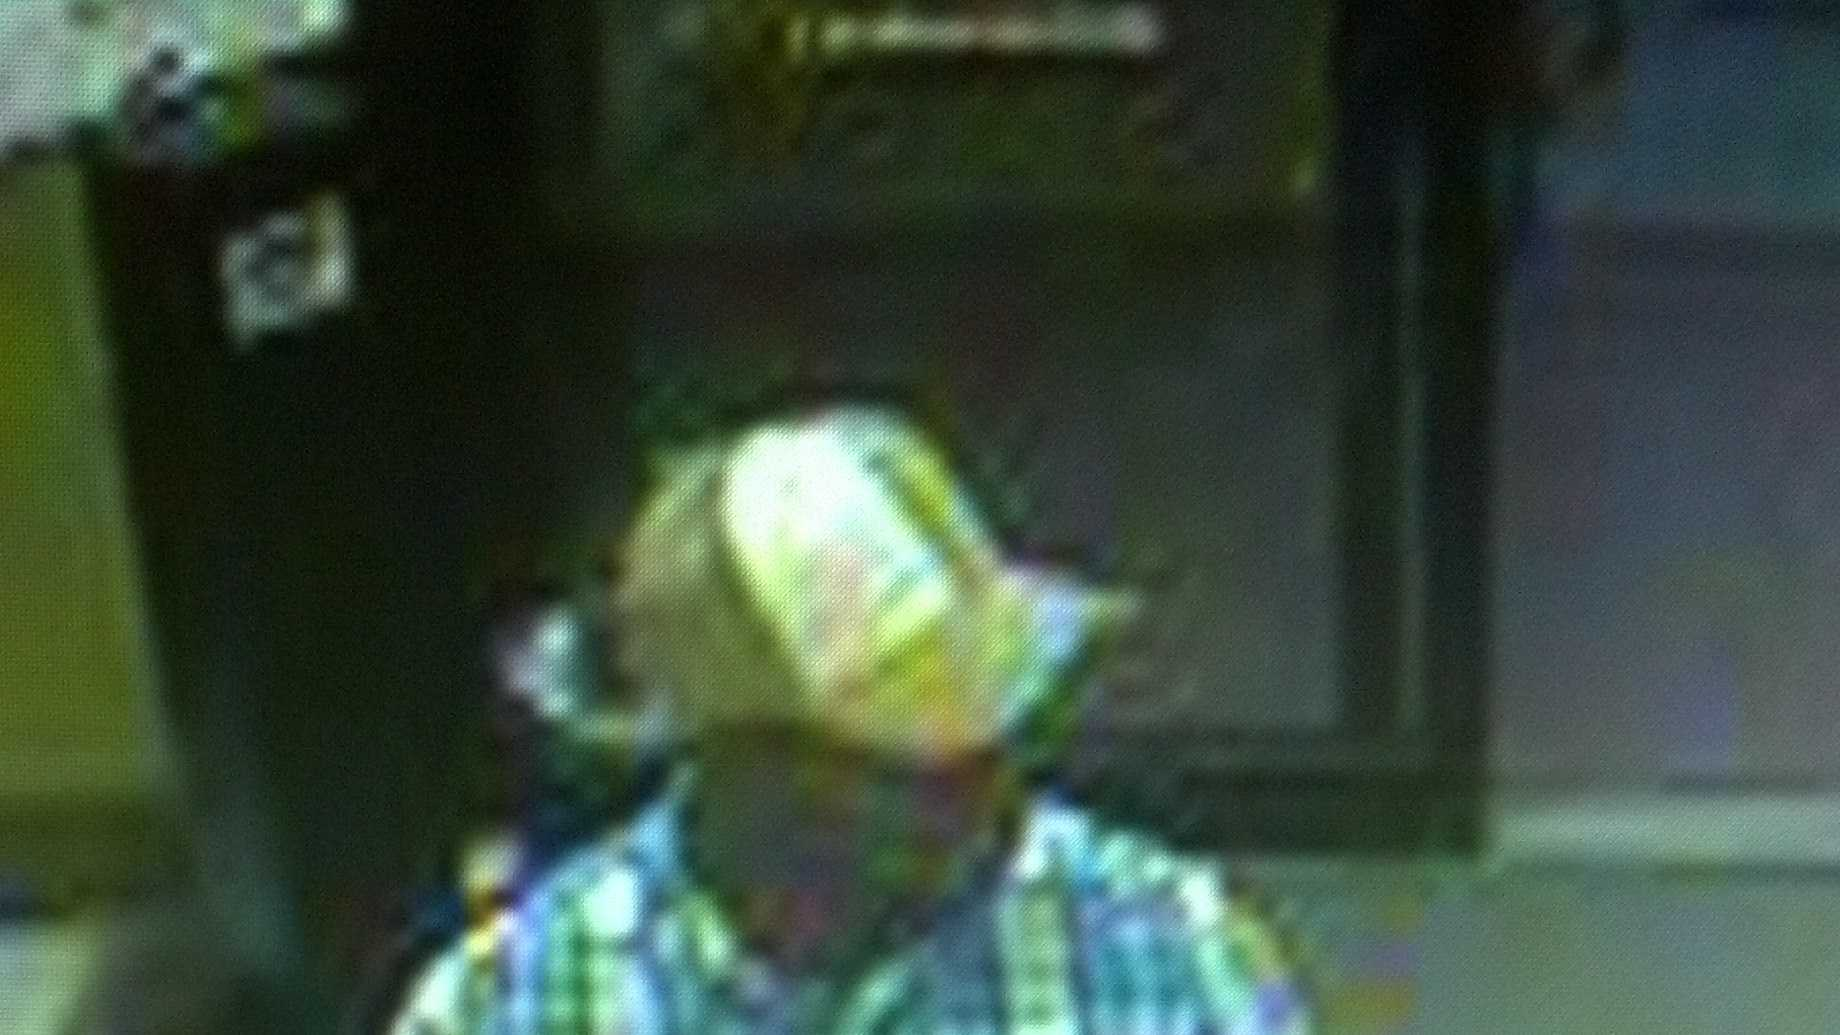 This man is suspected of robbing the Sharps Liquor store Monday.